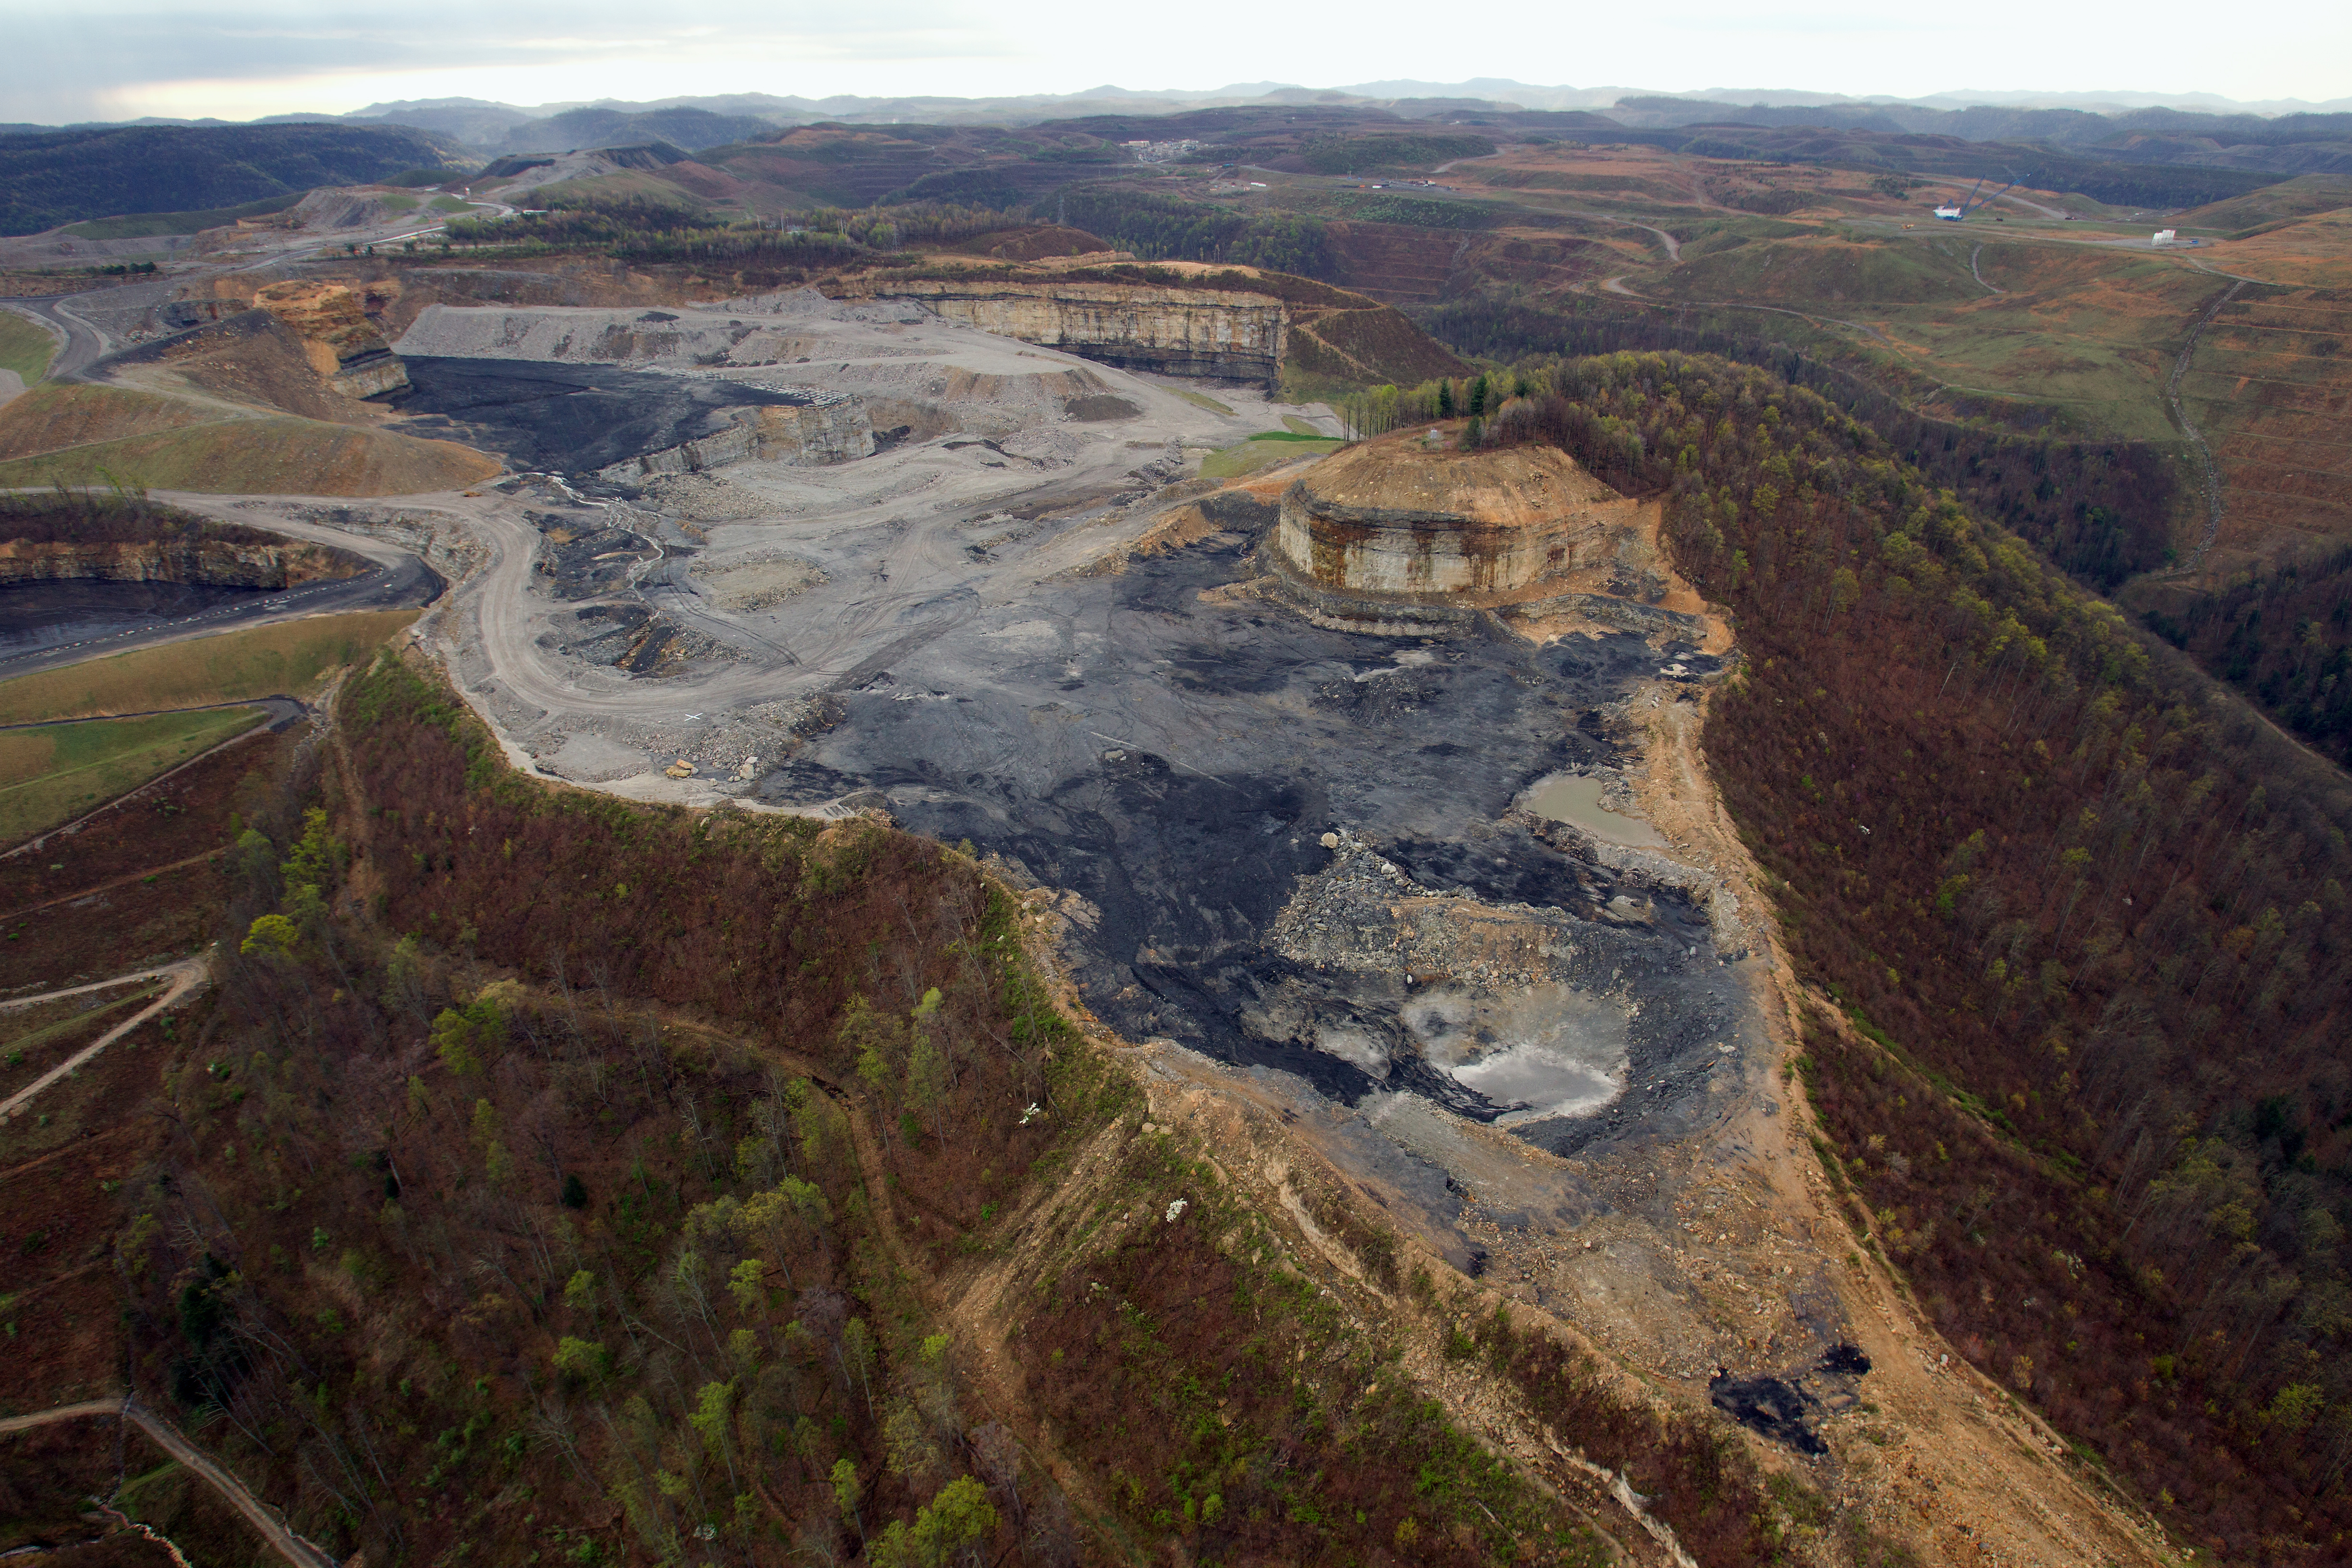 Aerial photo of removal mining | Zinn Education Project